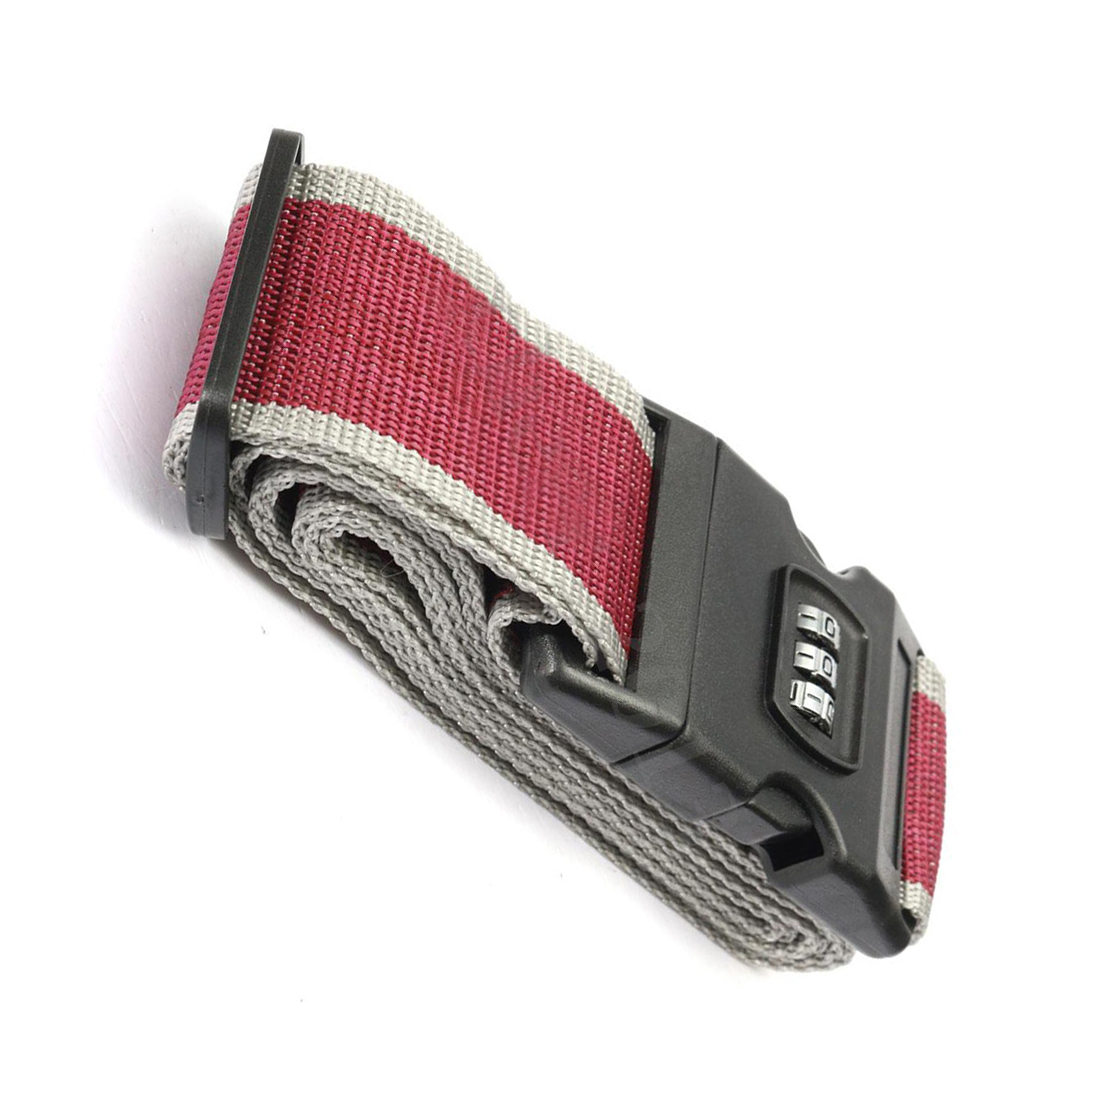 Hot Fashion Safety belt Belt Lock Combination Travel Luggage Suitcase band color:gray red maritime safety